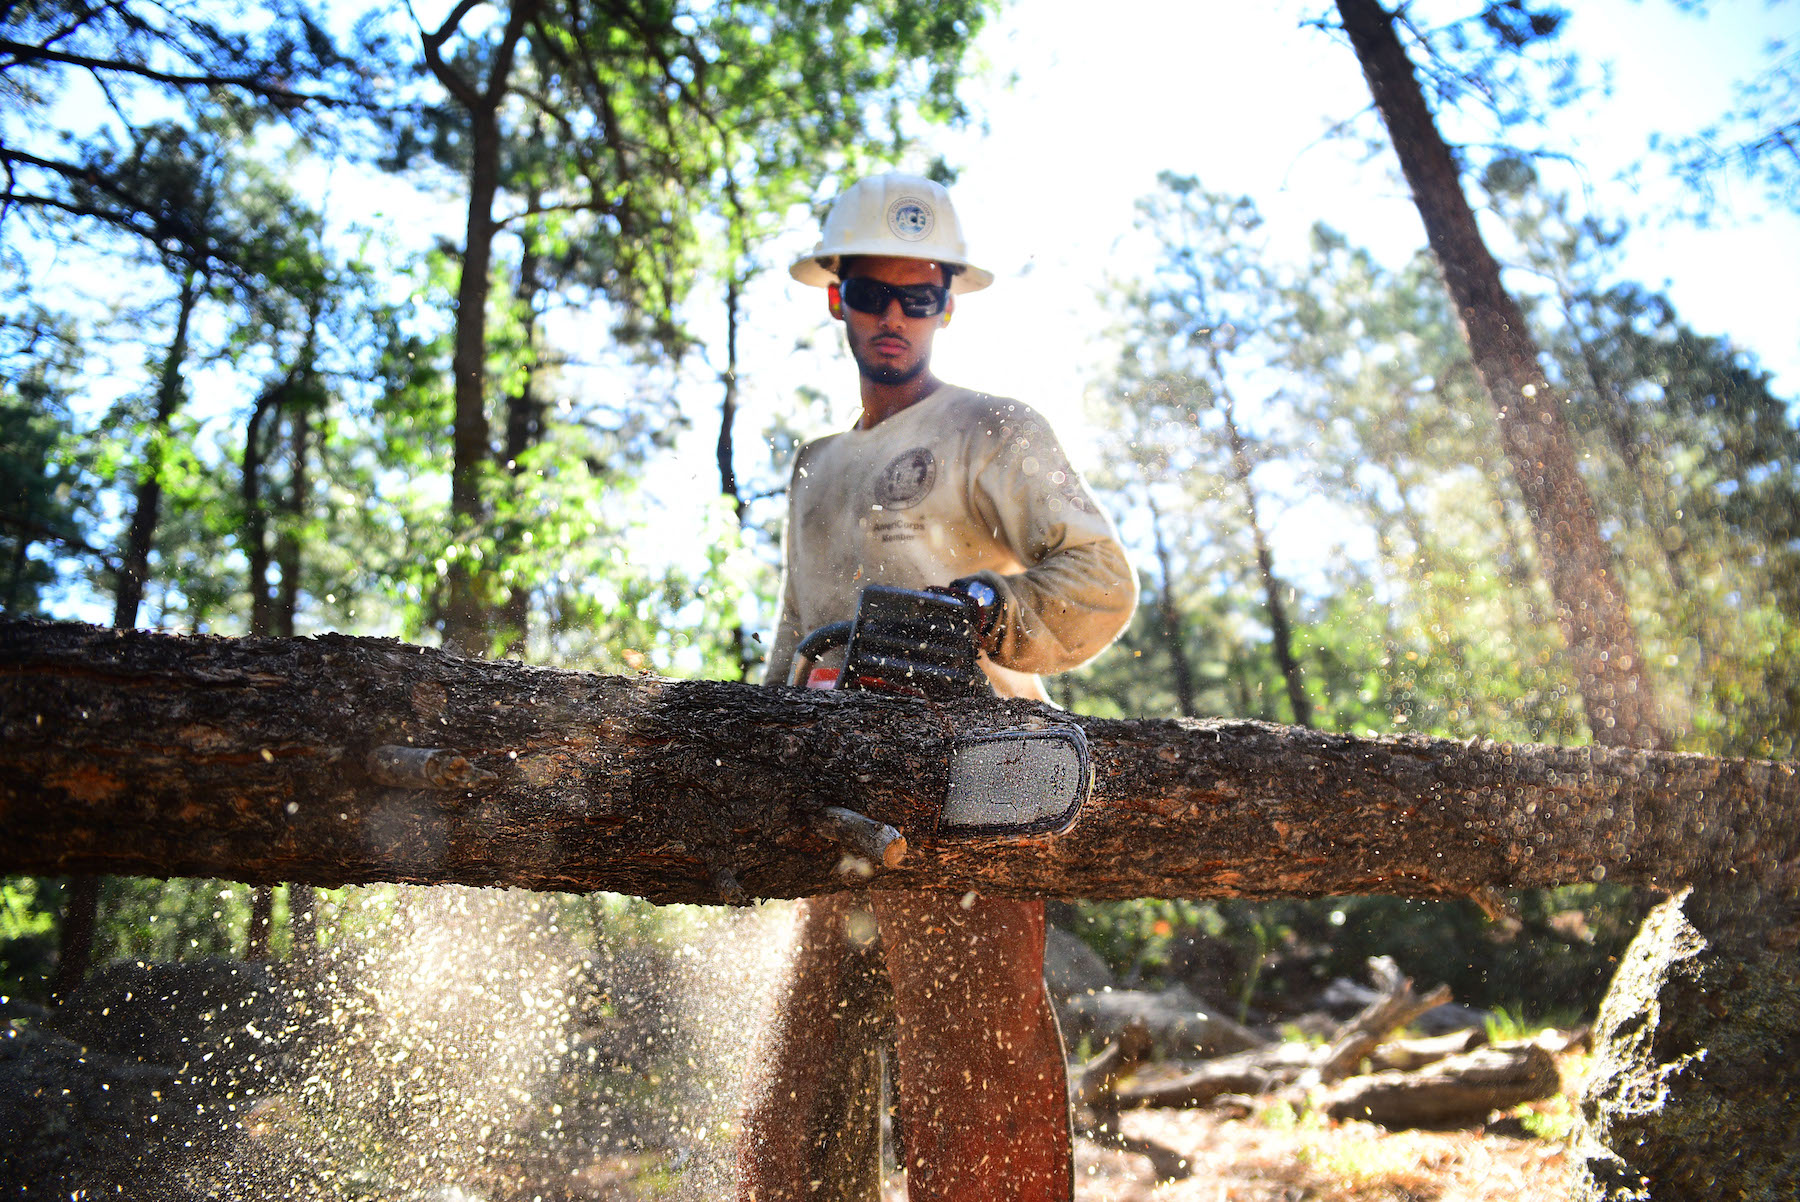 Crew member, John Anderson bucks a suspended tree with his chainsaw. Bucking is the process of cutting a felled and delimbed tree into logs.